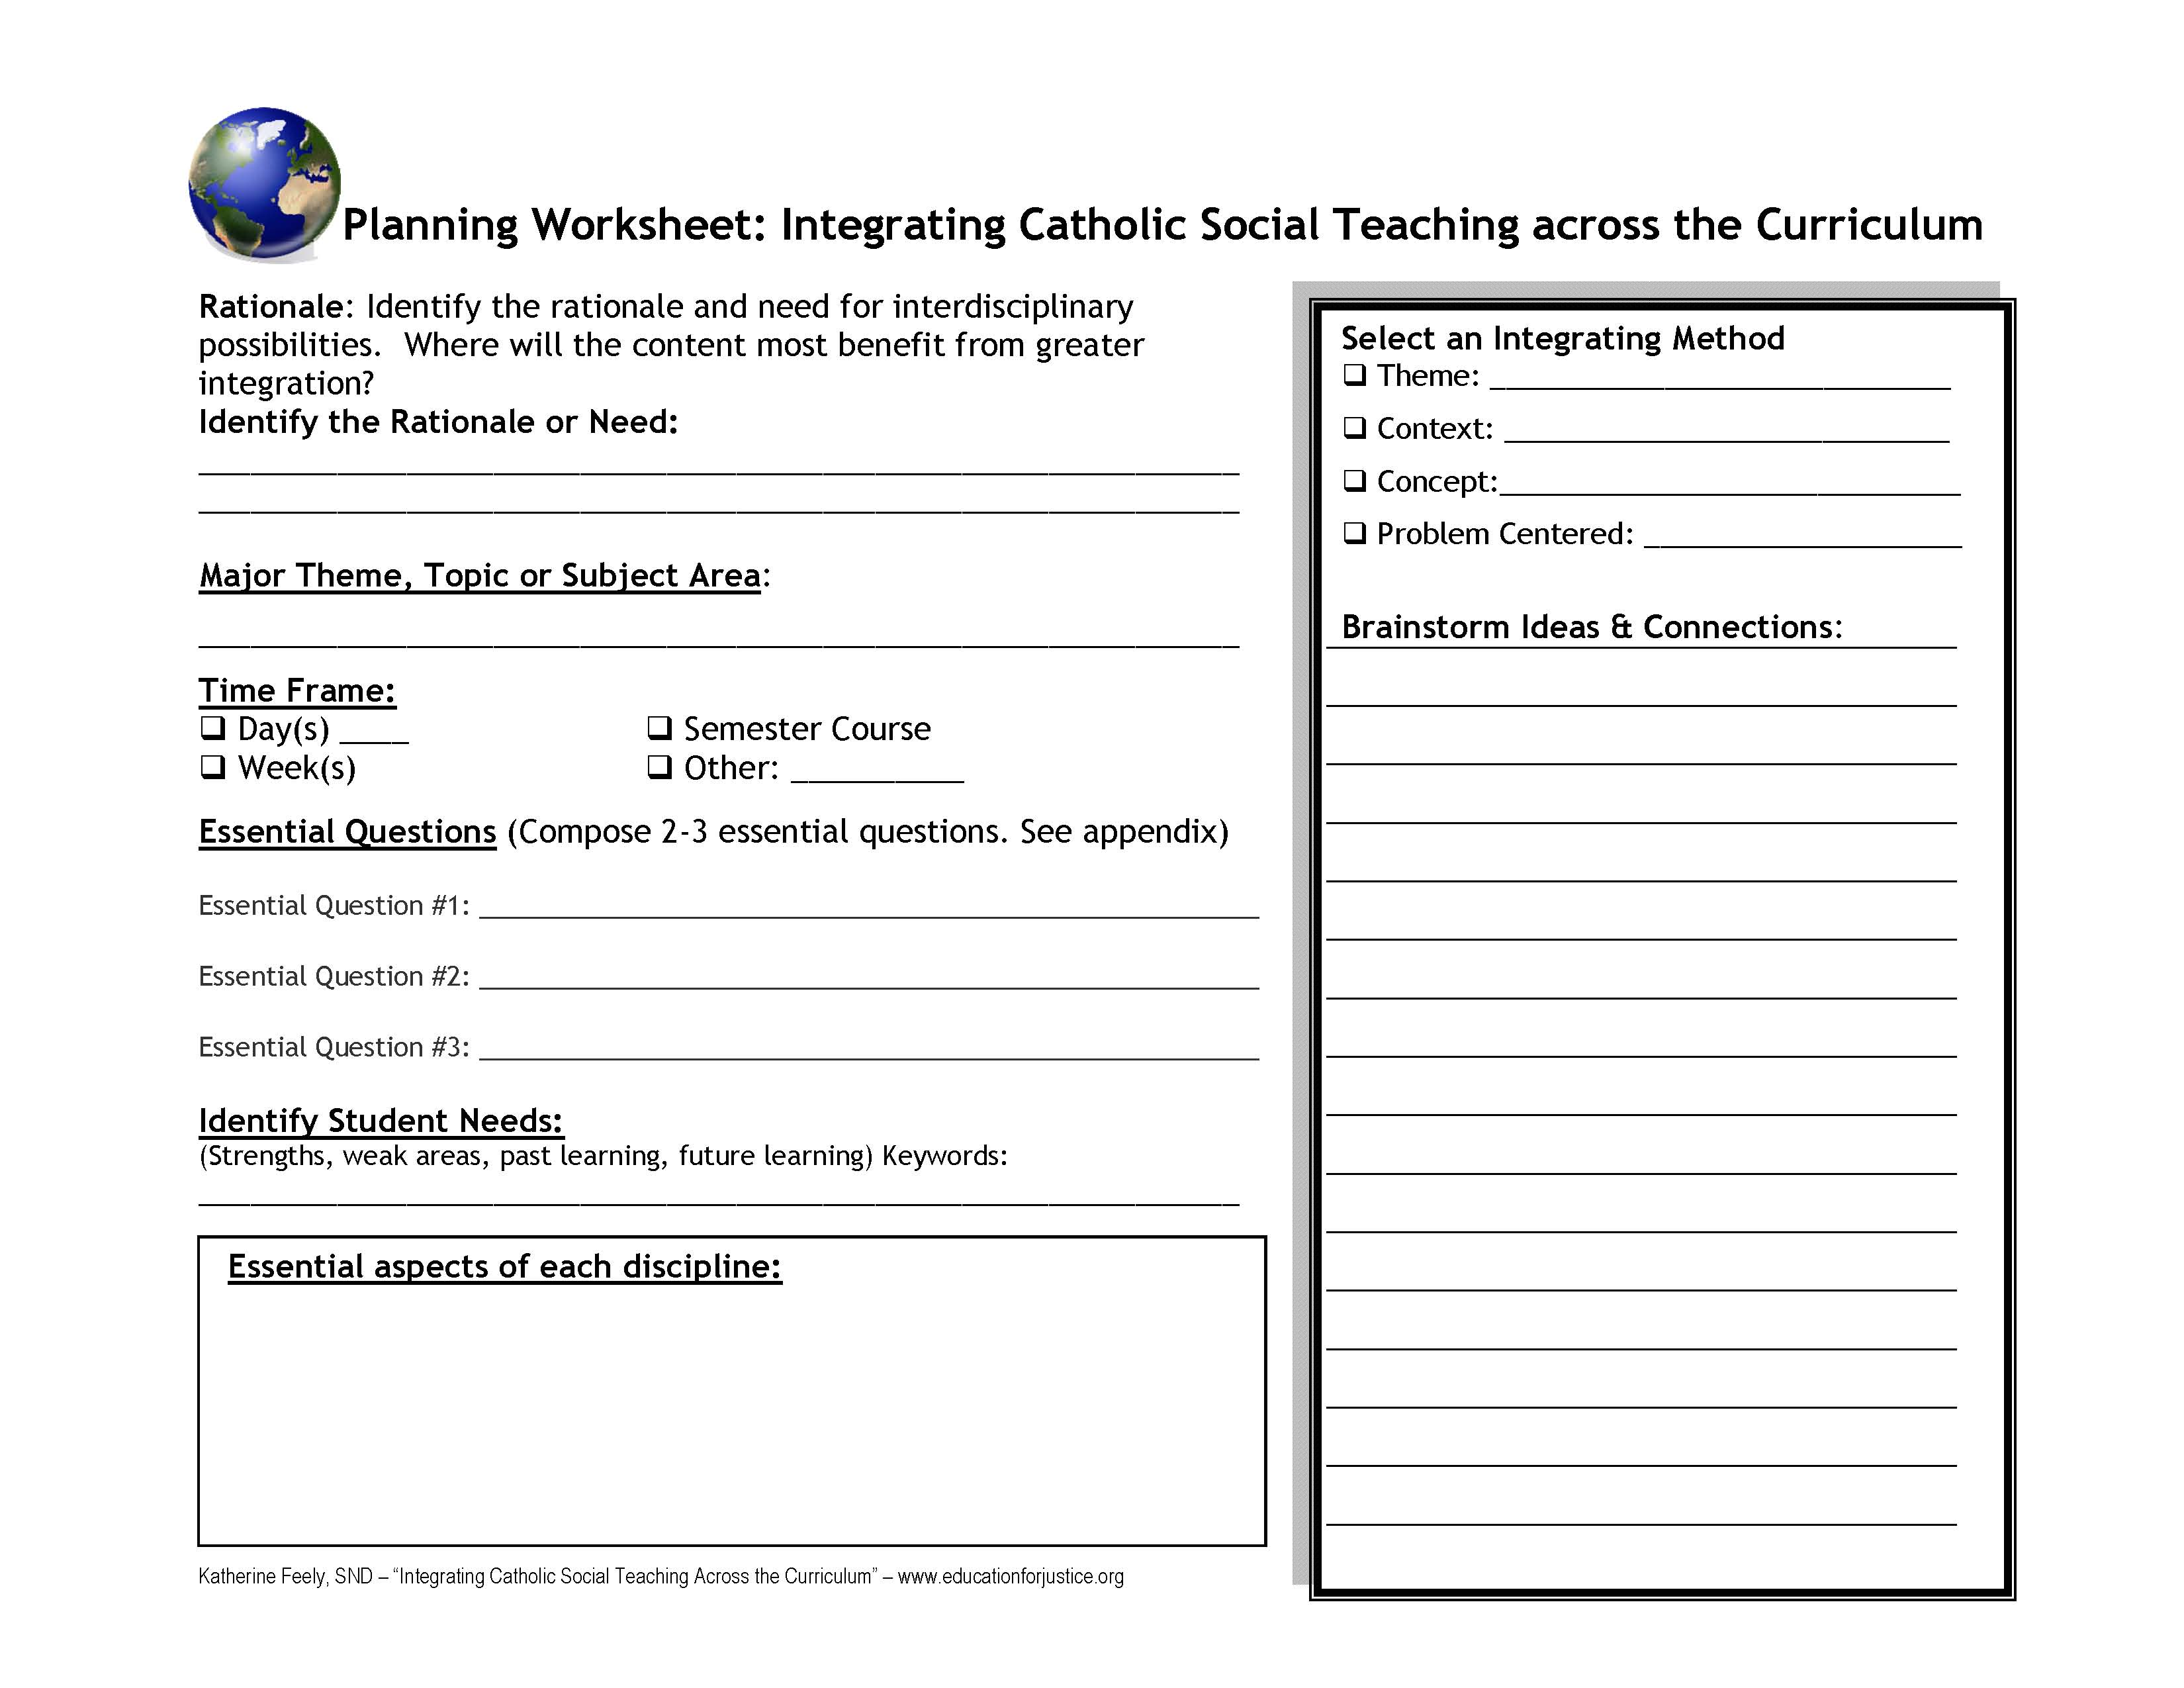 Planning Worksheet For Integrating Catholic Social Teaching Across The Curriculum